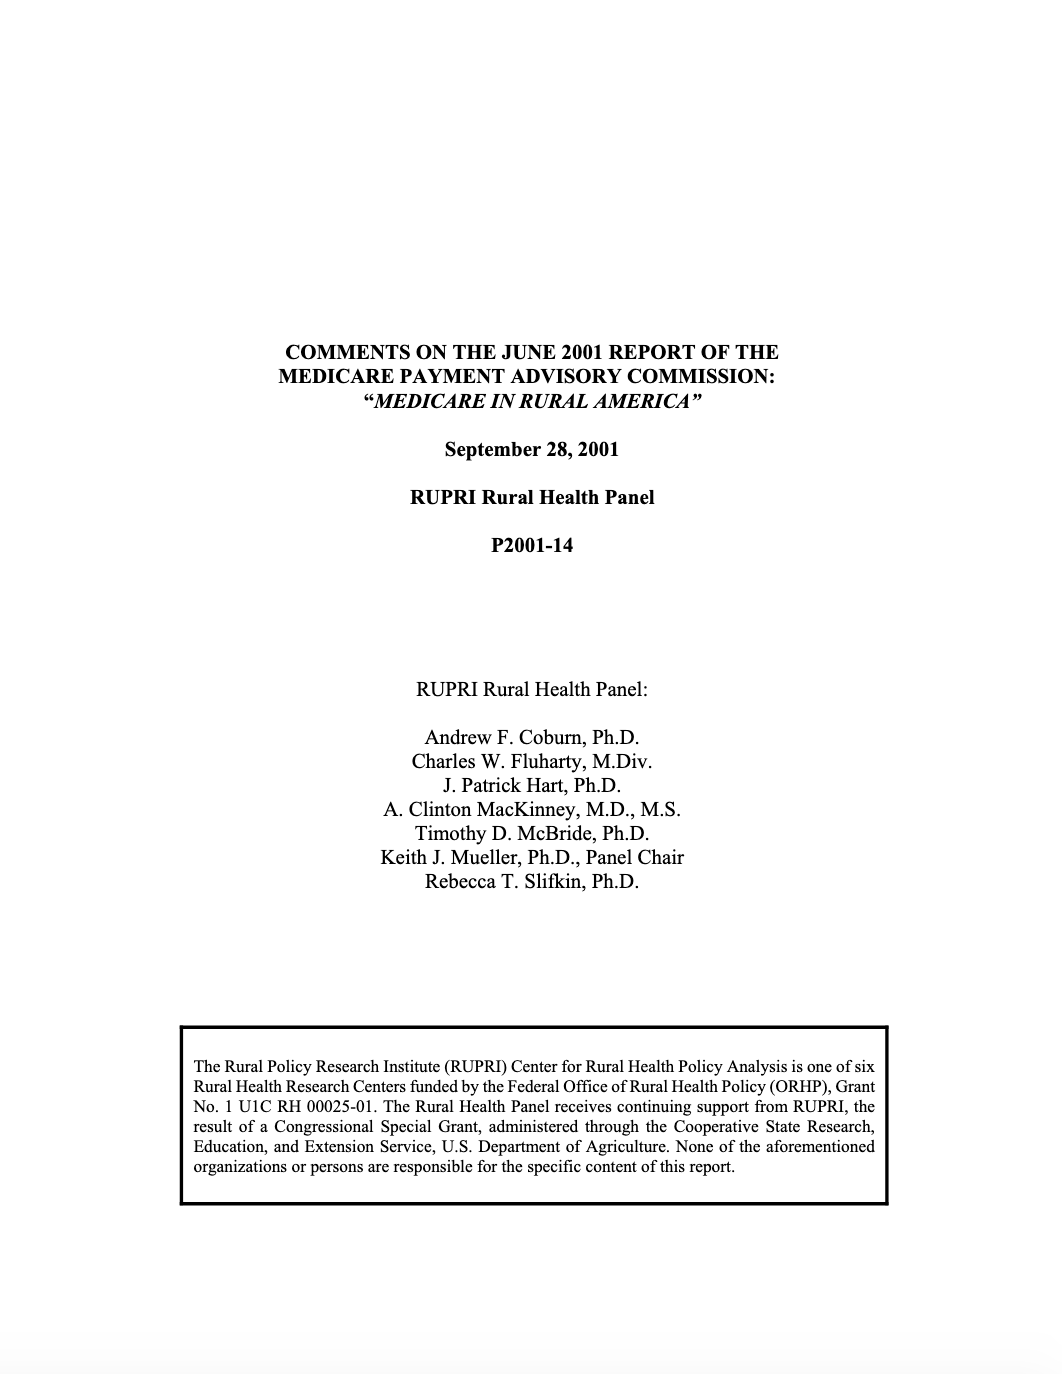 Comments on the June 2001 Report of the Medicare Payment Advisory Commission: Medicare in Rural America (Cover Image)